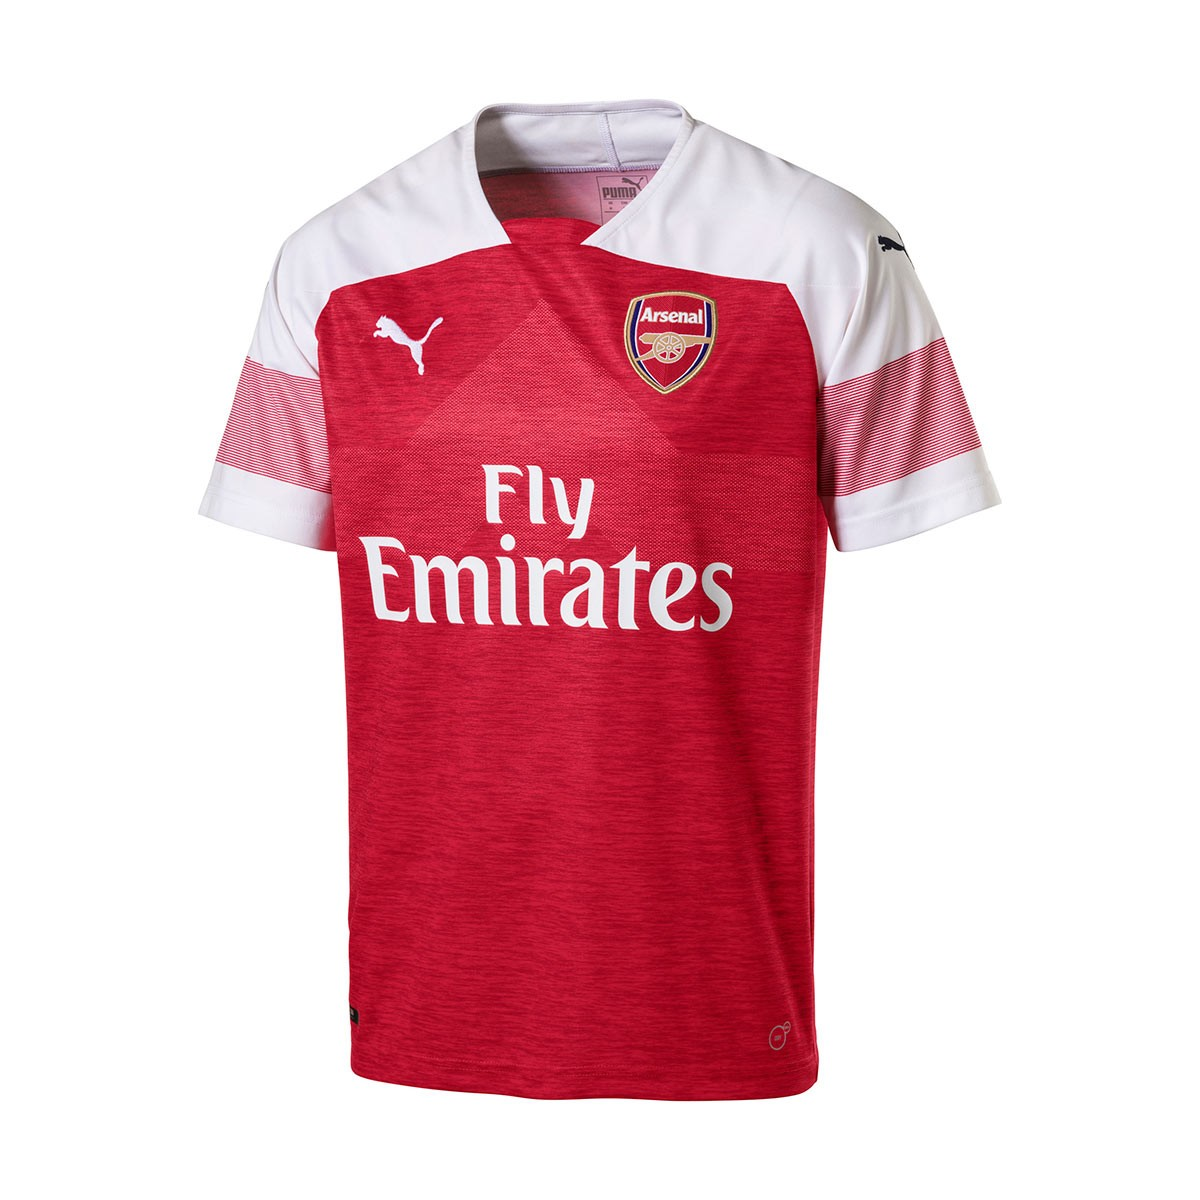 new arrival 84d67 aa70c arsenal fc uniforms